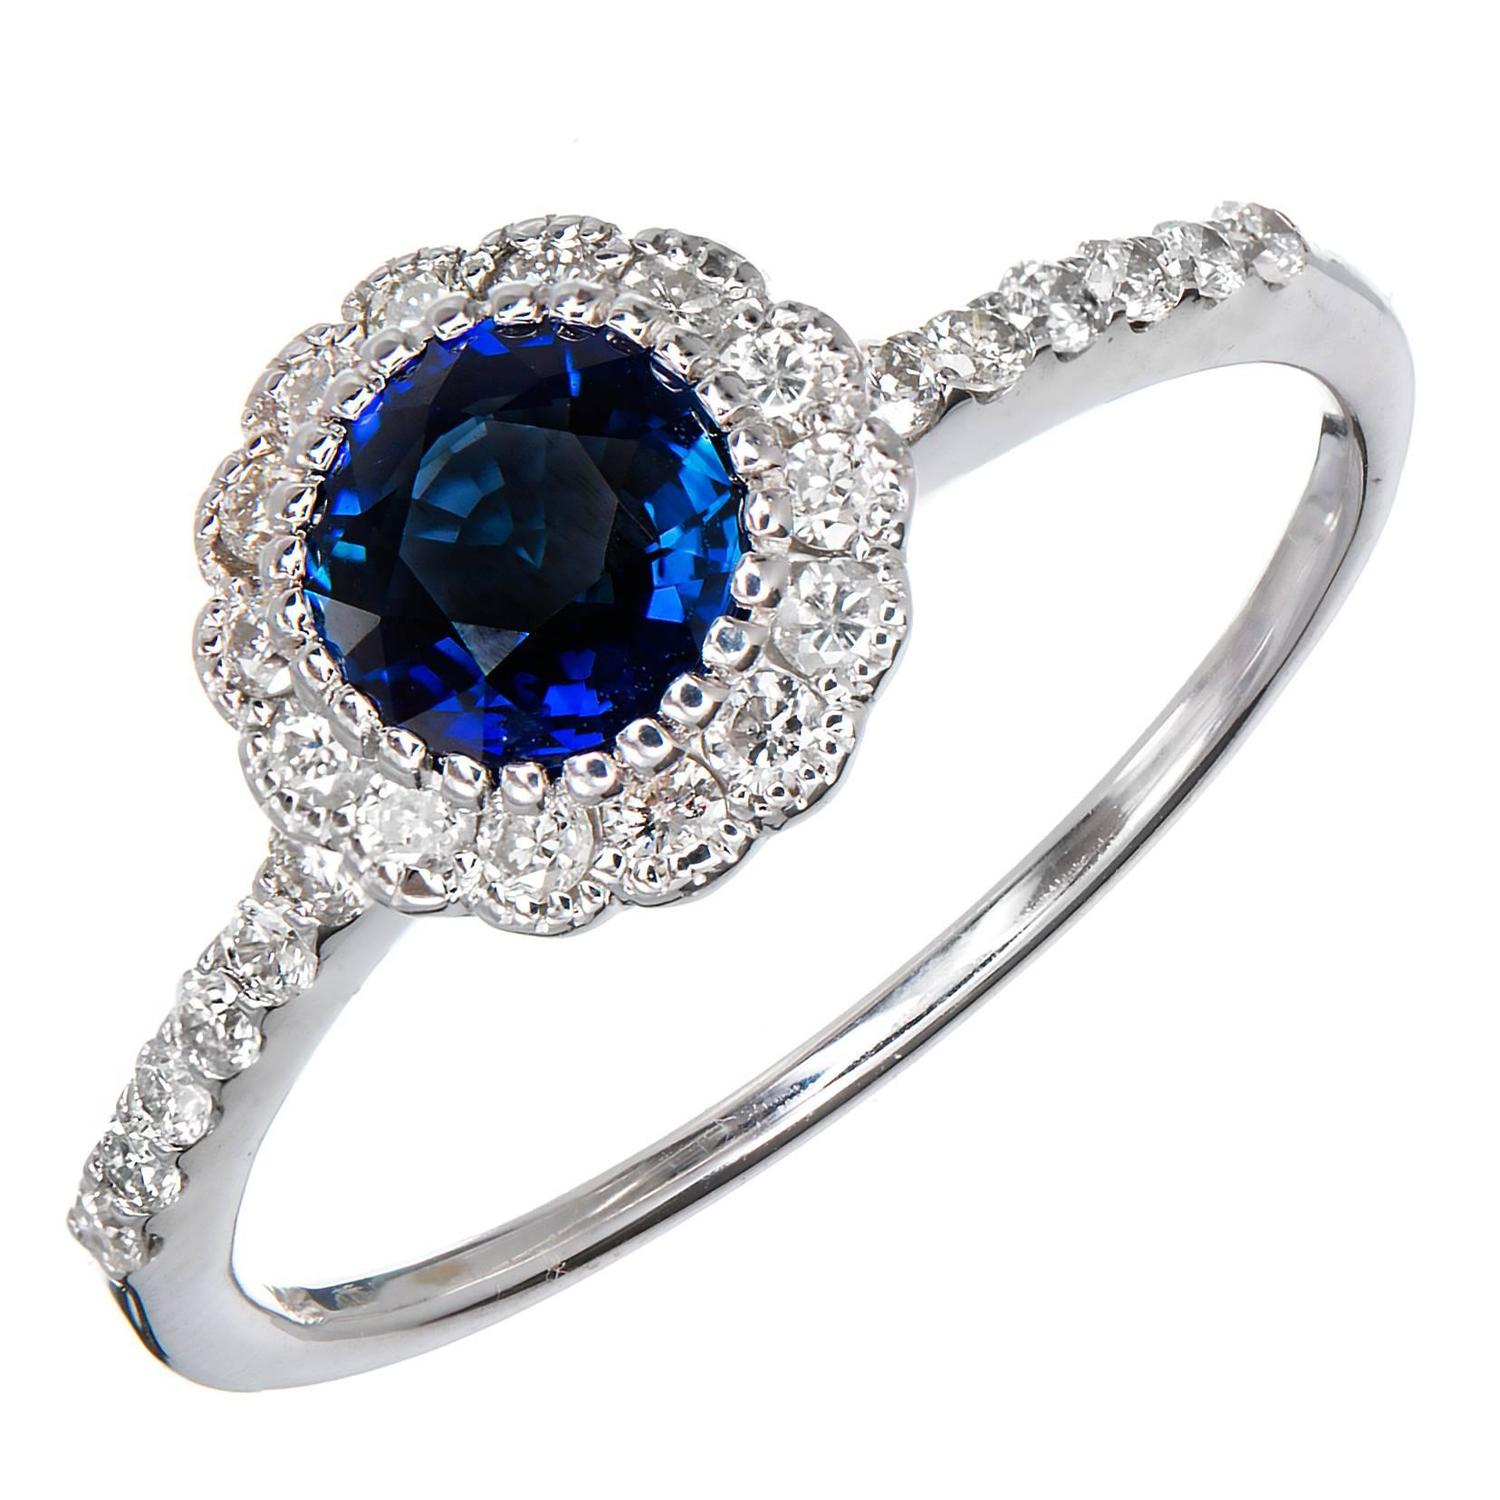 ctw ring sz dsc diamond solitaire floral products sapphire cocktail